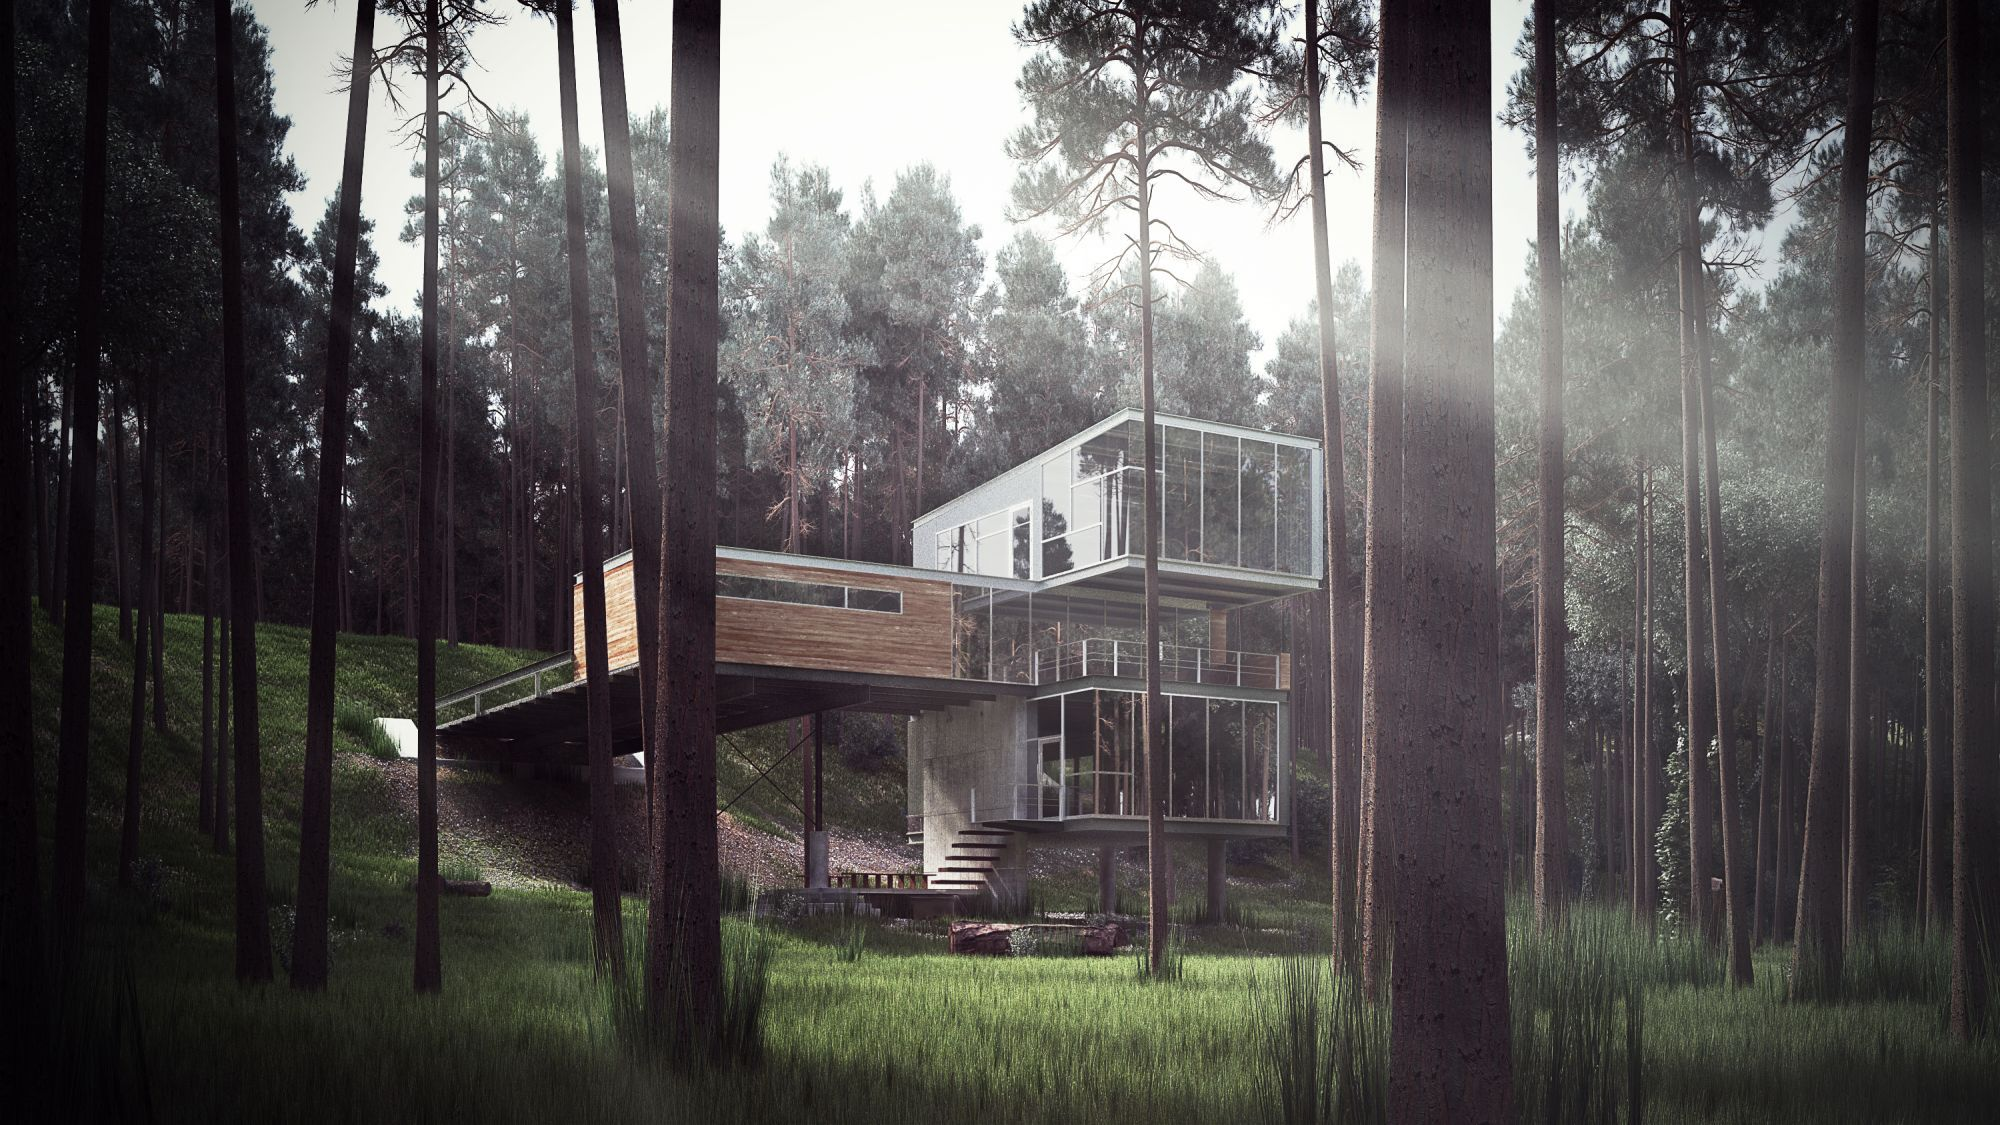 Cgarchitect professional 3d architectural visualization user community 3d visualisation of a modern cabin